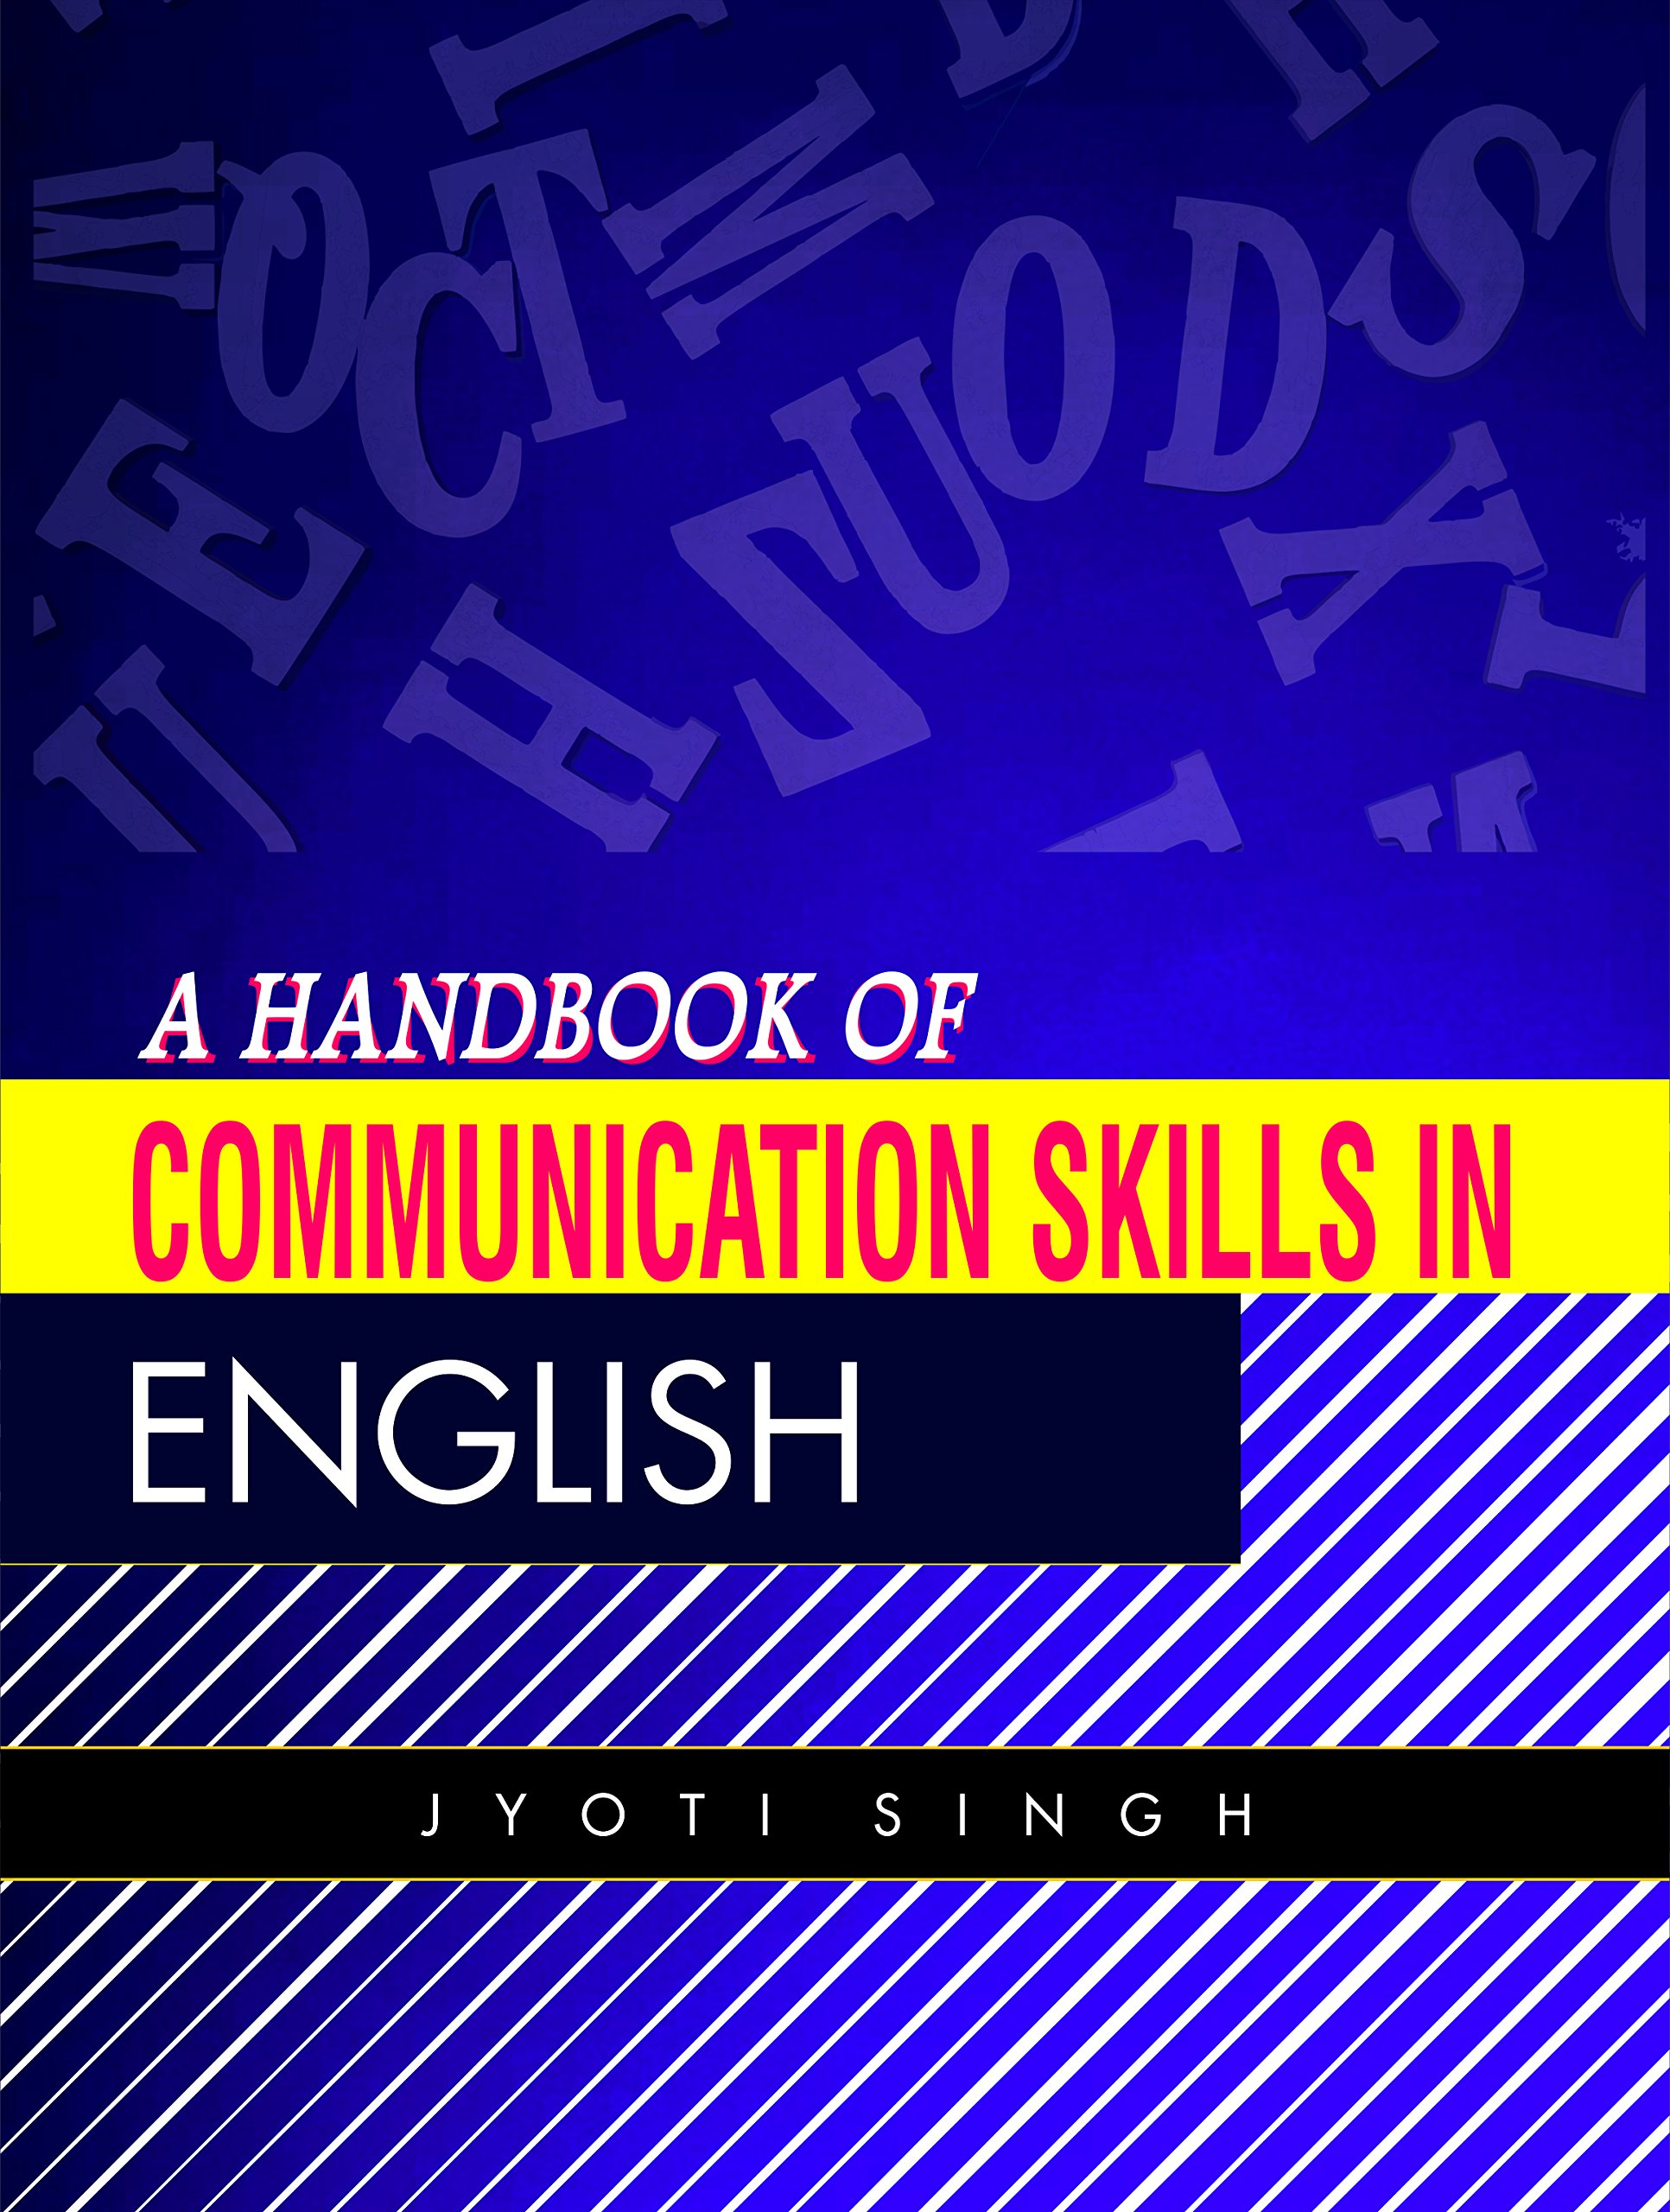 A handbook of communication skills in English by Jyoti singh Paperback – 2017